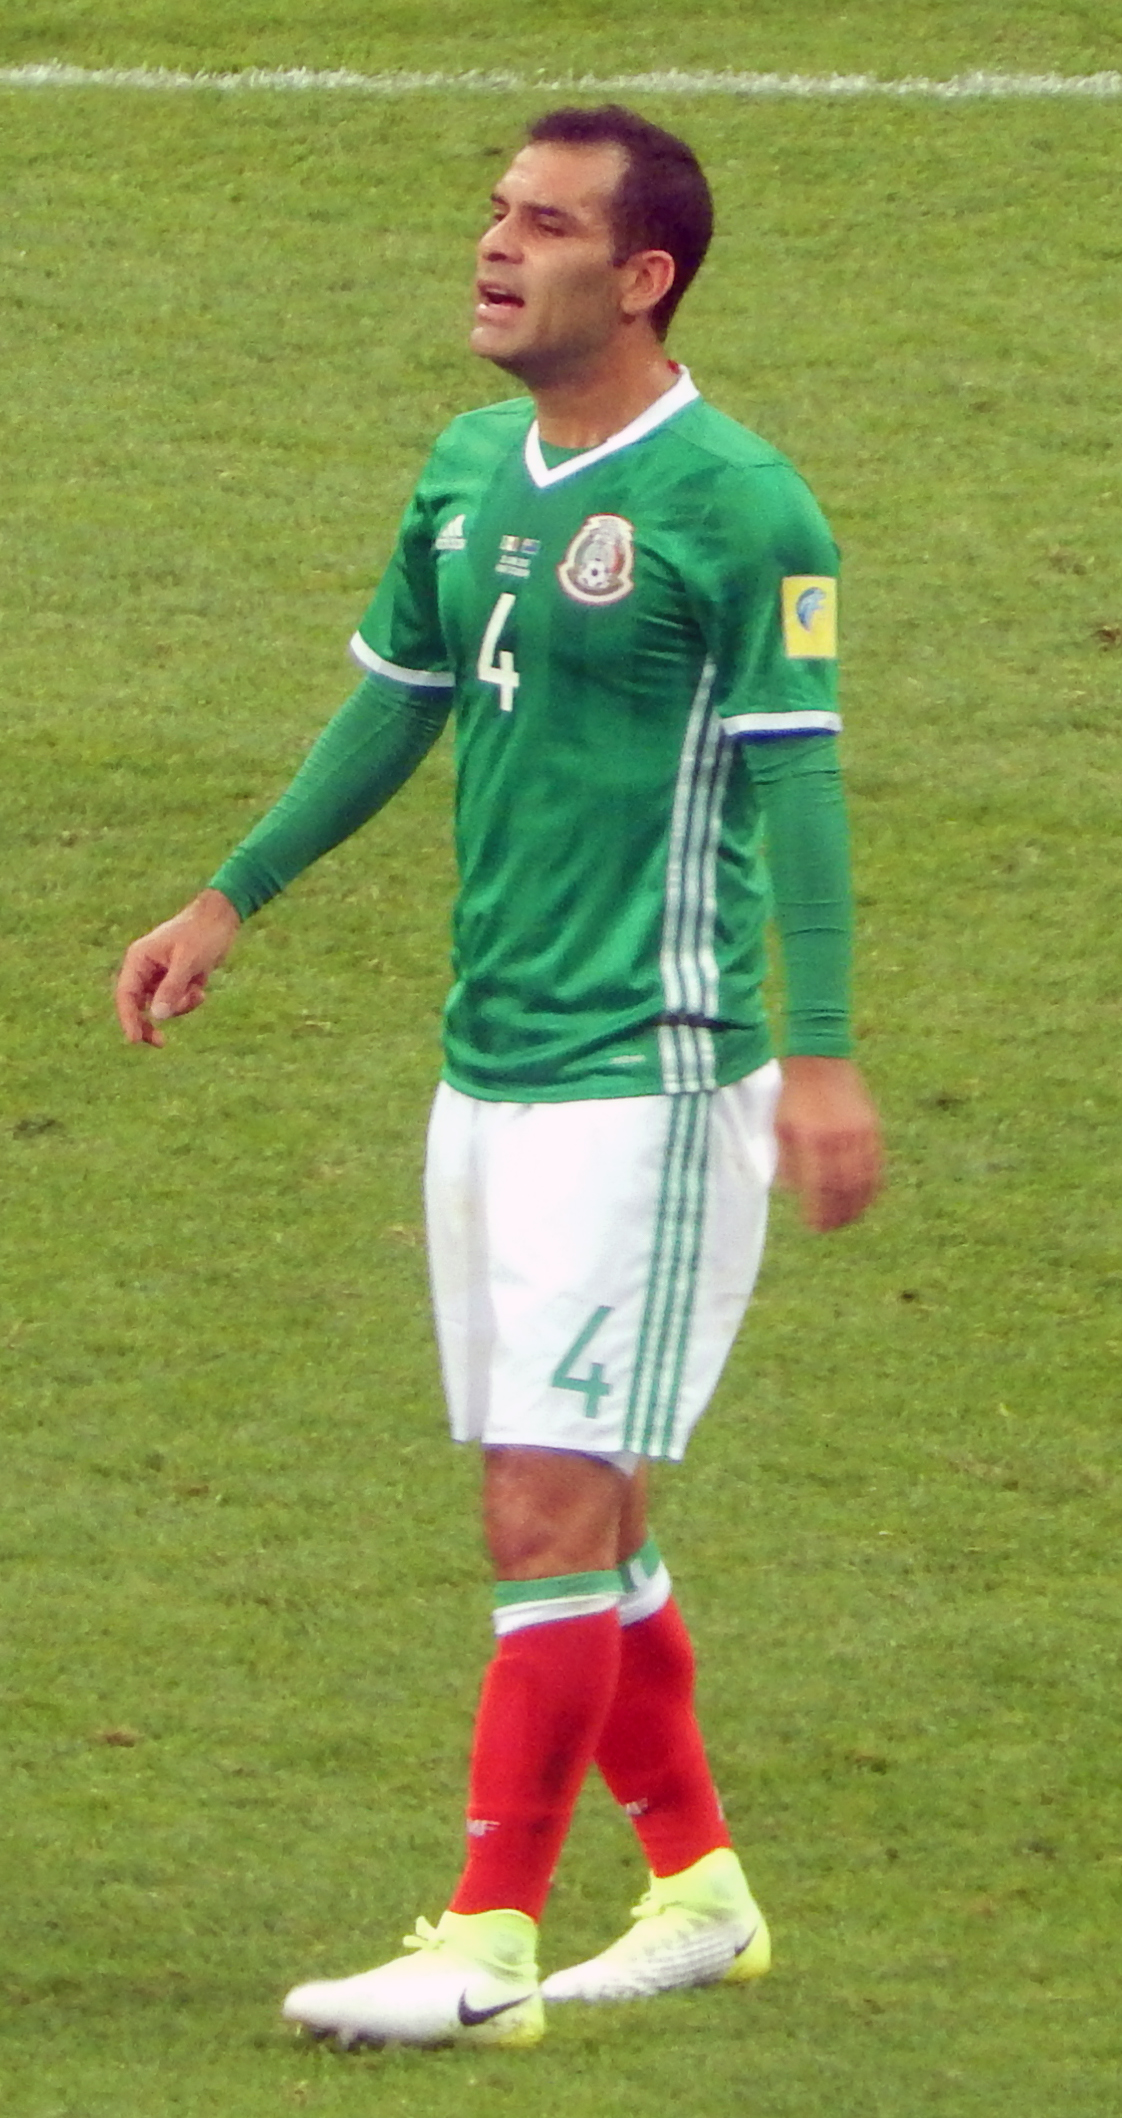 Márquez playing for Mexico at the 2017 FIFA Confederations Cup